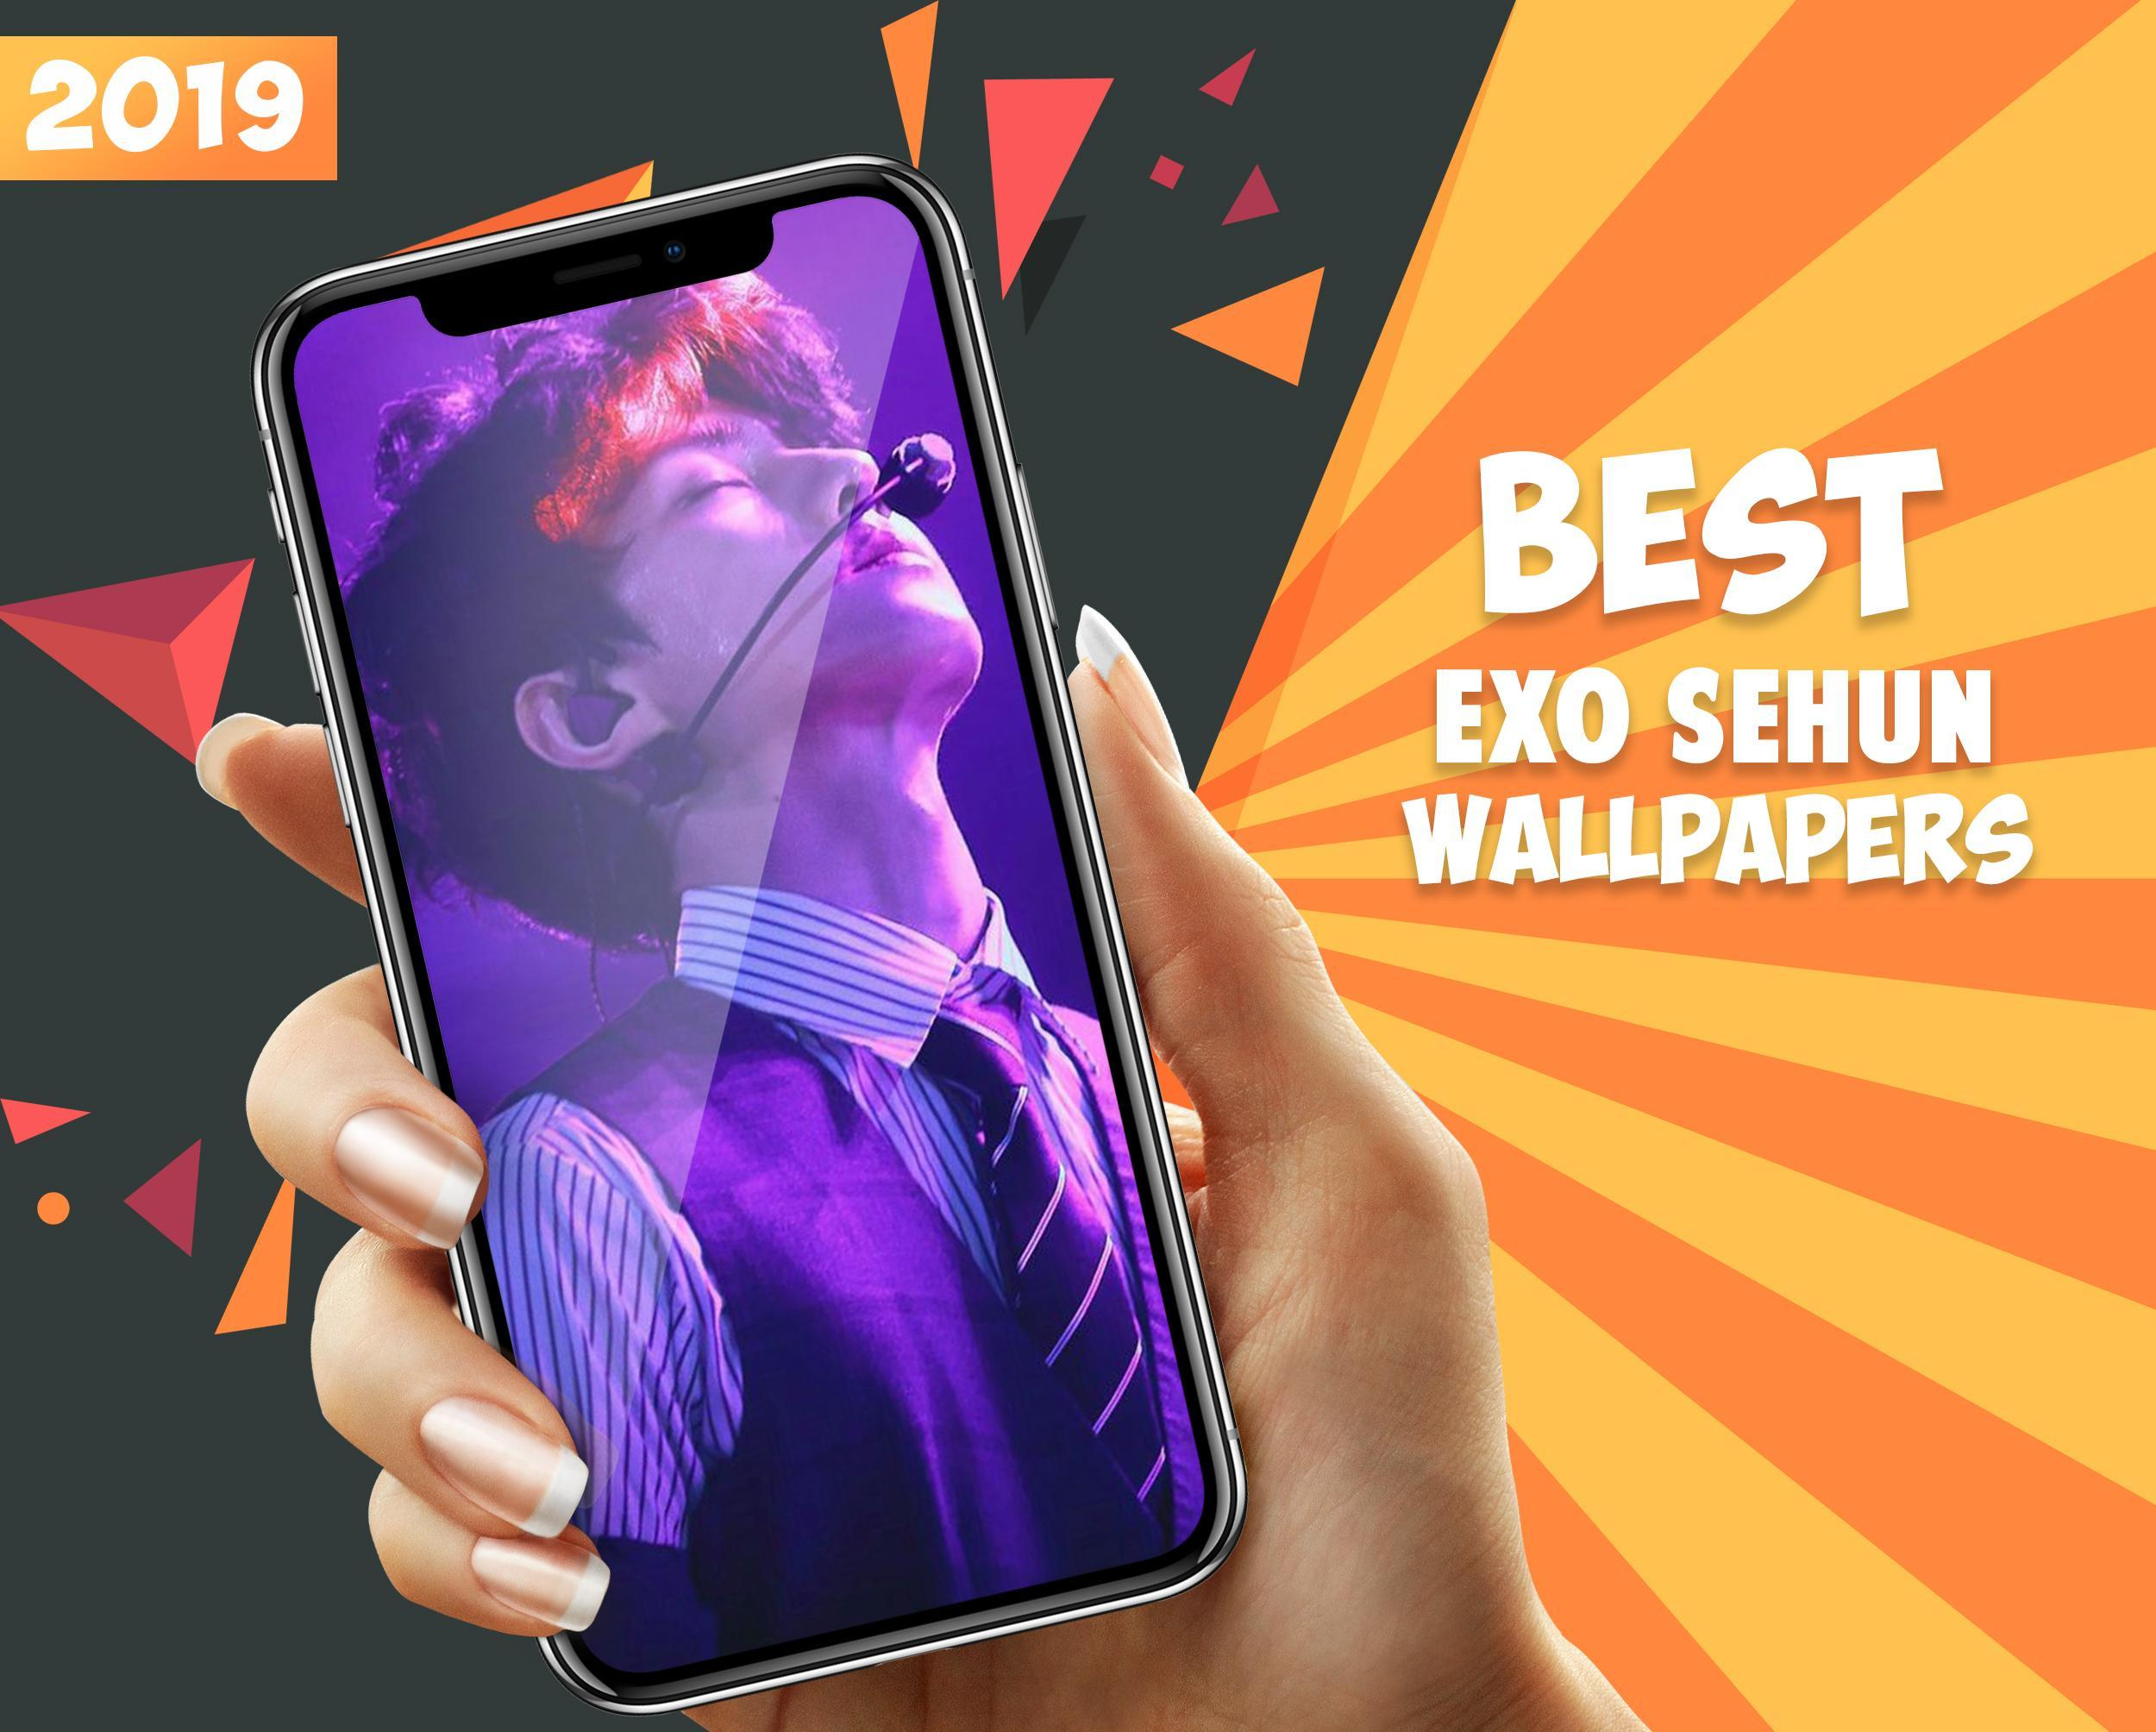 Exo Sehun Hd Wallpapers For Android Apk Download